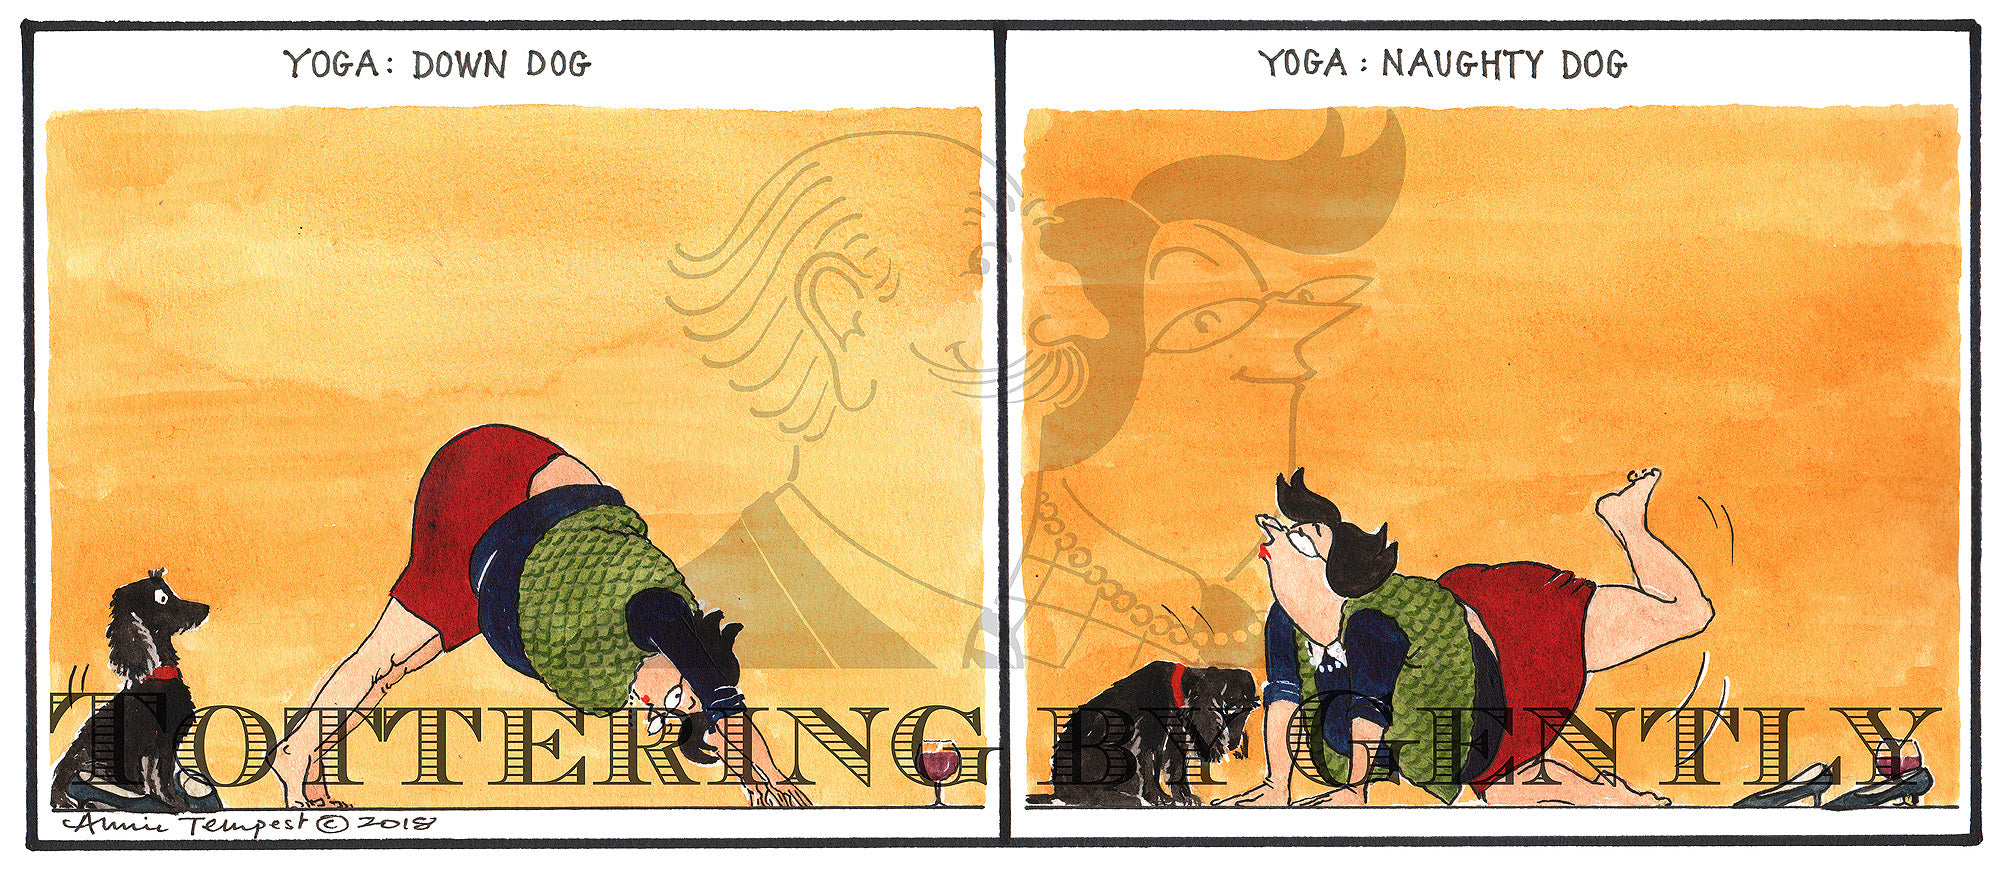 Yoga: Down dog - naughty dog... (CL1235)